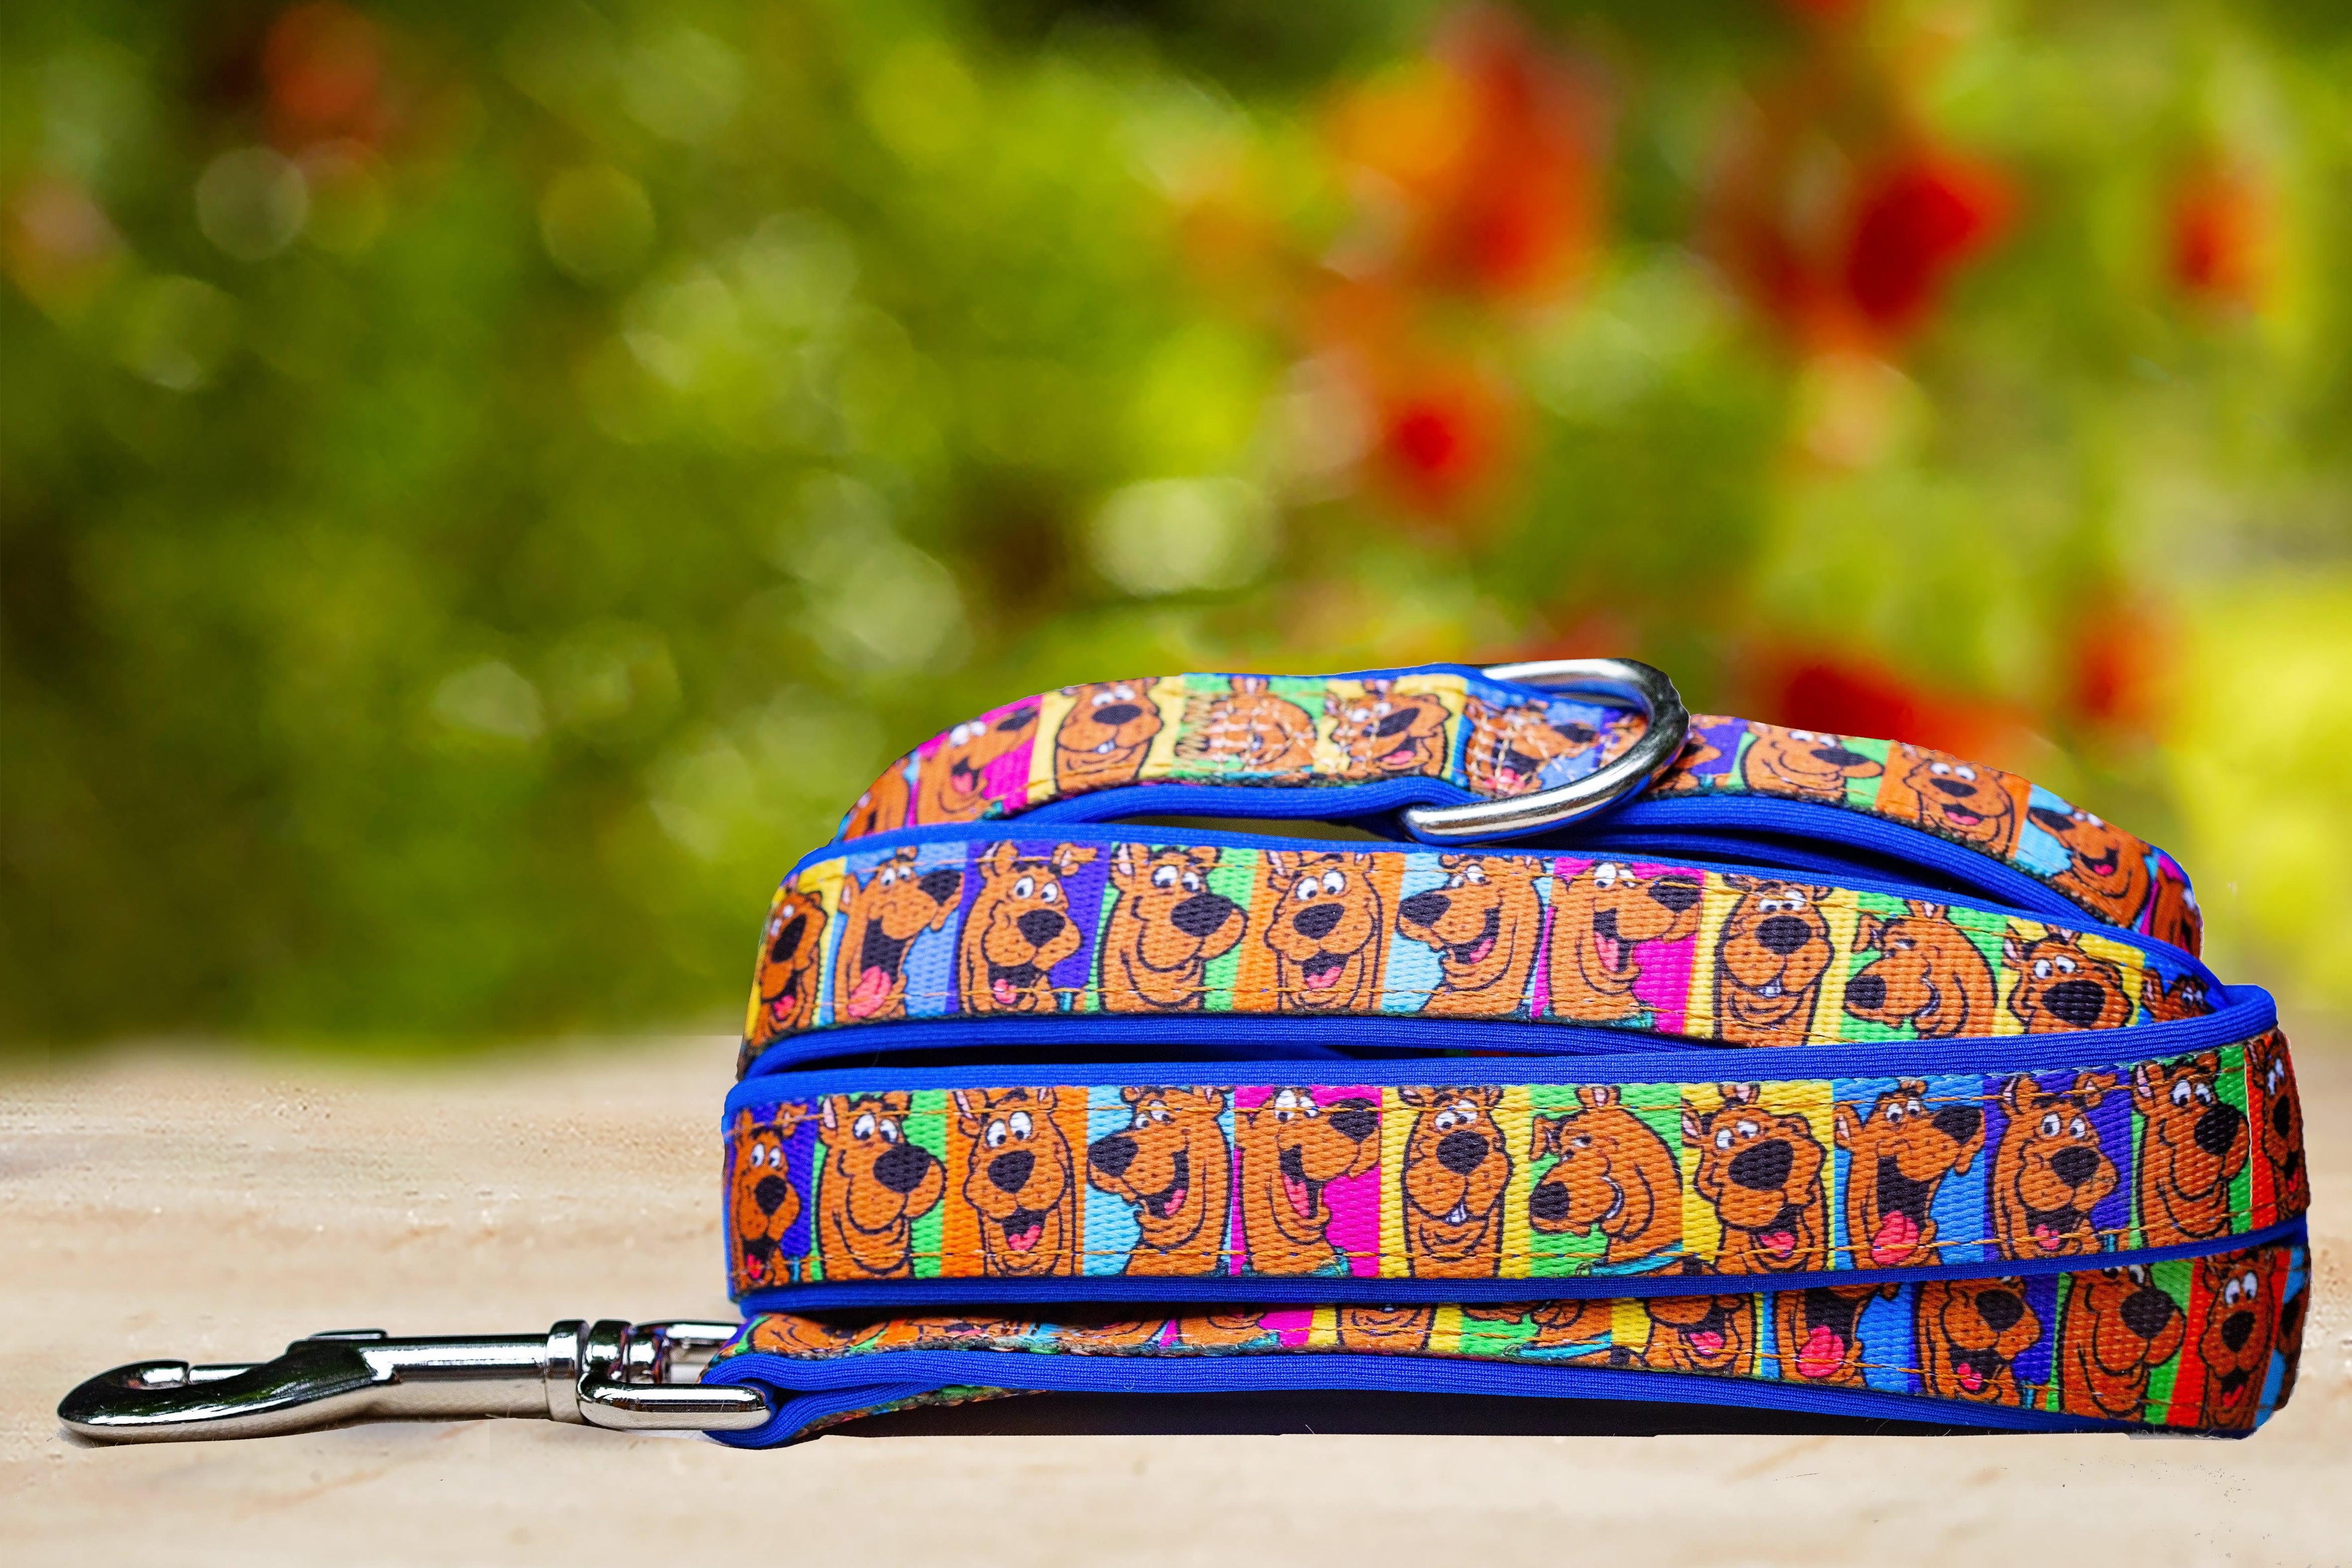 Scooby Doo Dog Lead (Premade) Blue-Dizzy Dog Collars